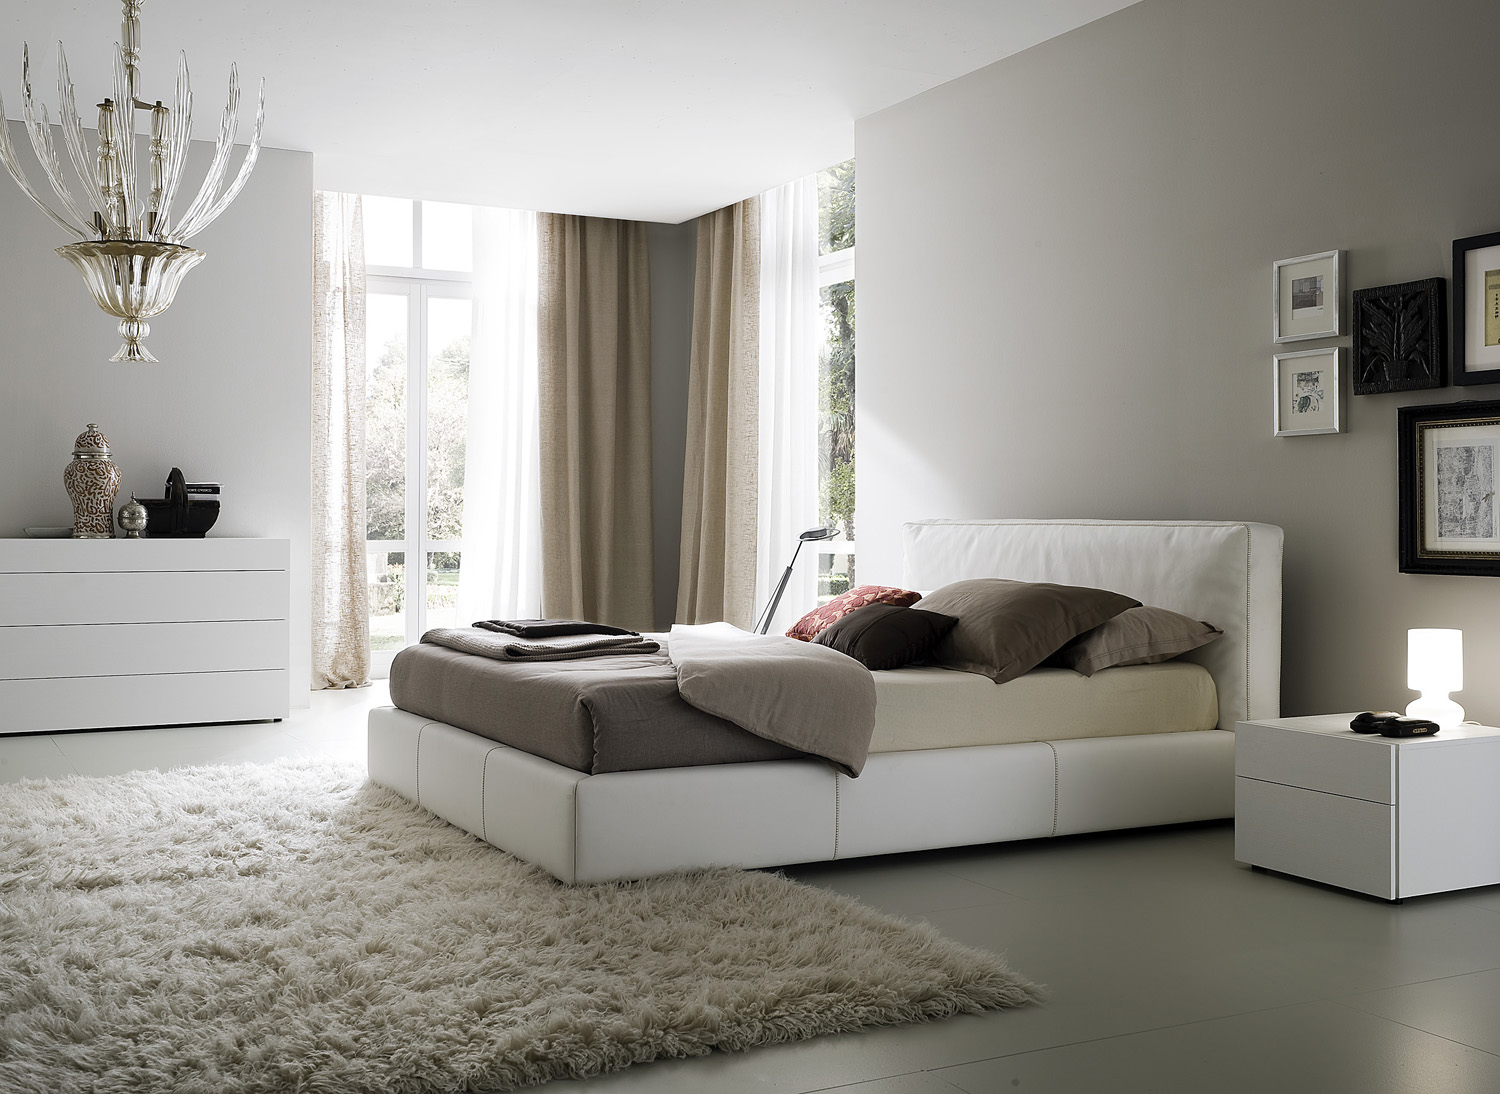 Bedroom Decorating Ideas from Evinco